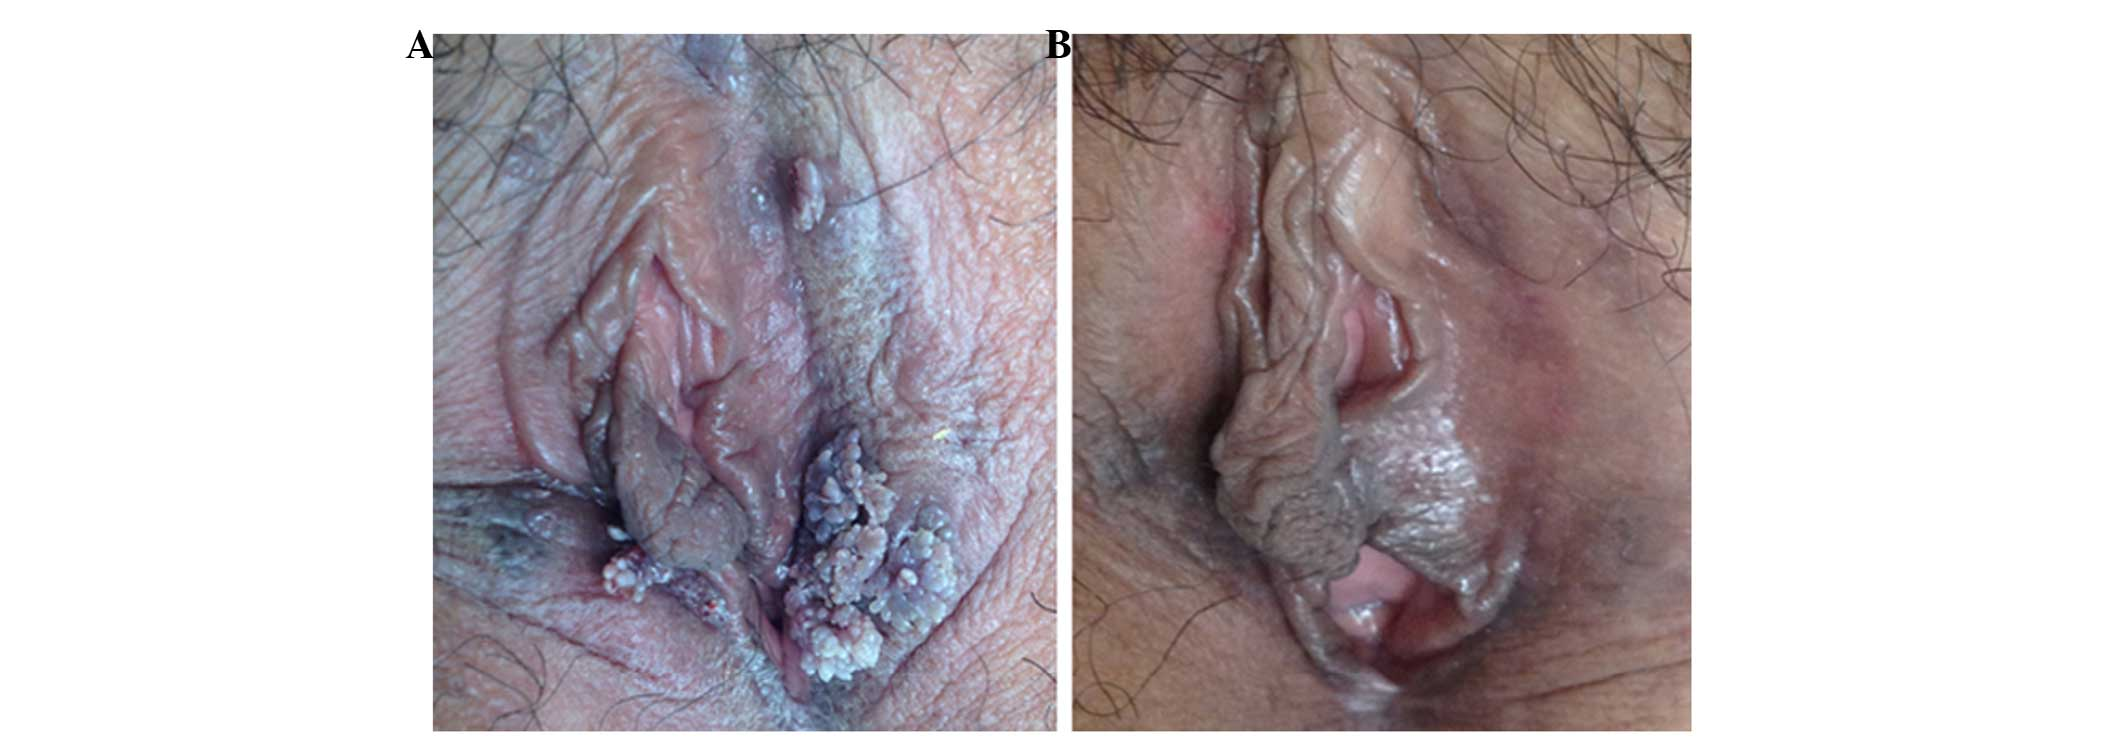 condyloma acuminata delivery hpv head and neck cancer risk